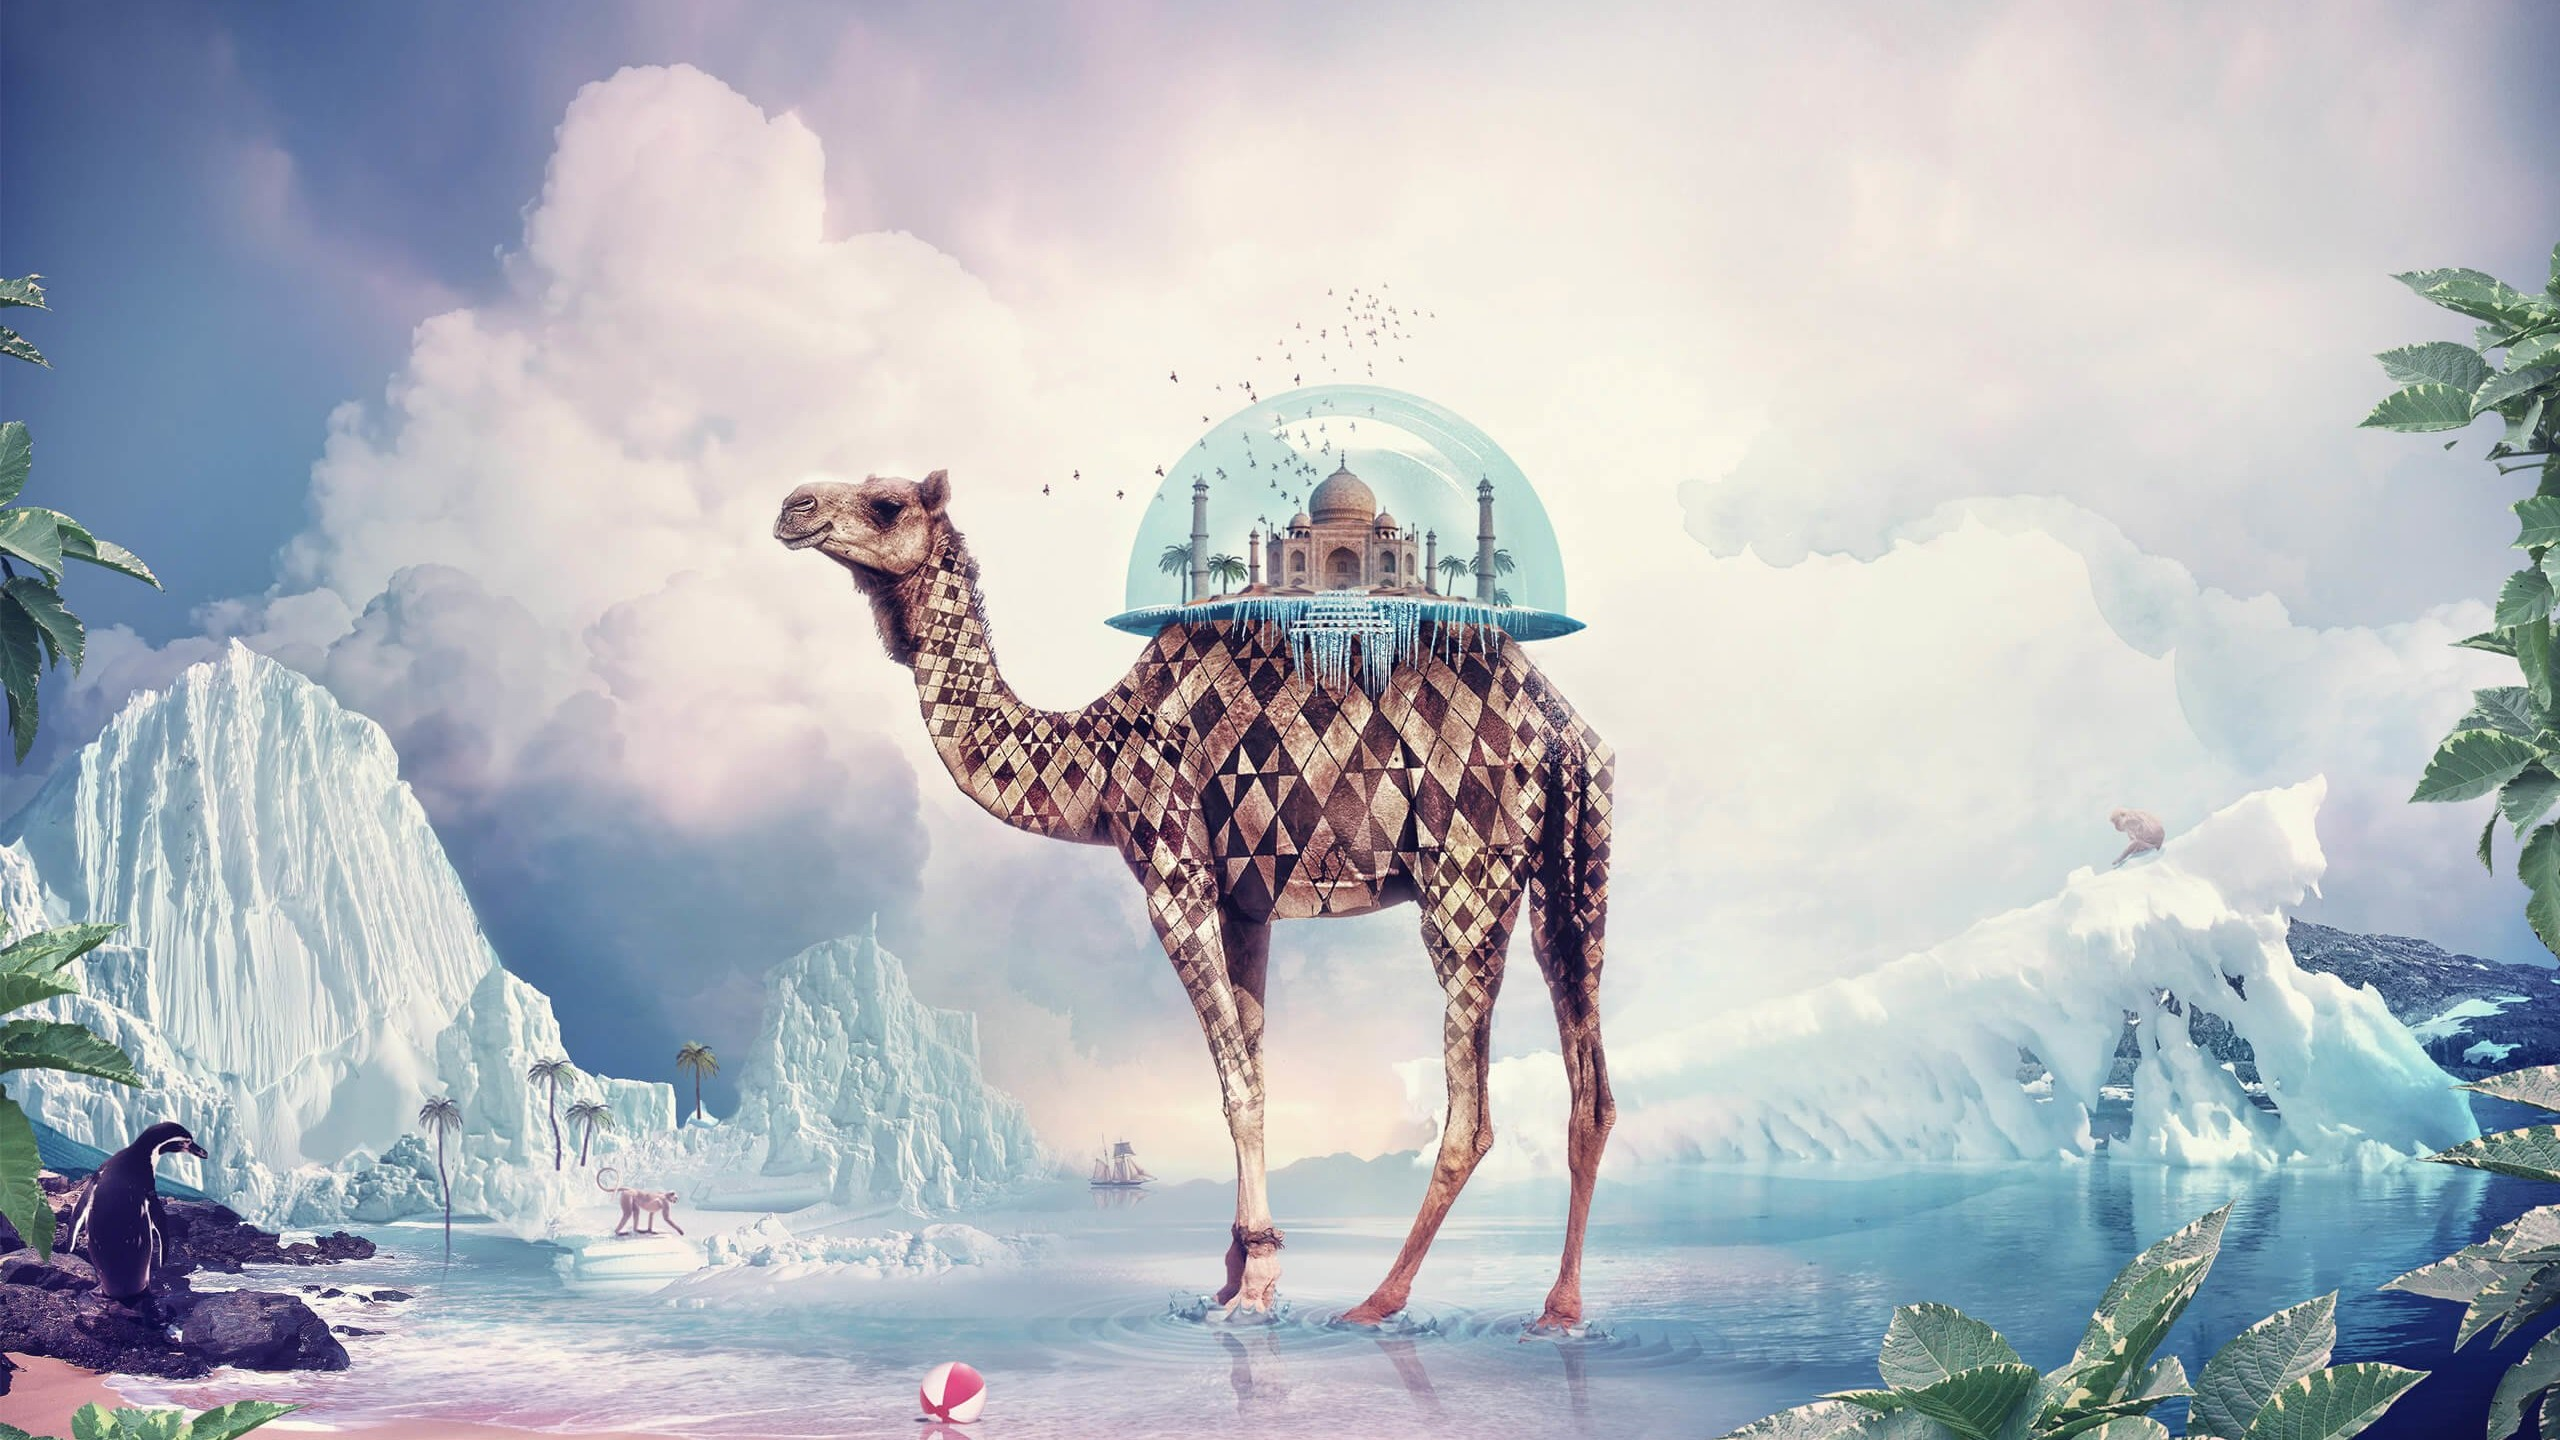 Fantasy Camel Wallpaper for Desktop 2560x1440